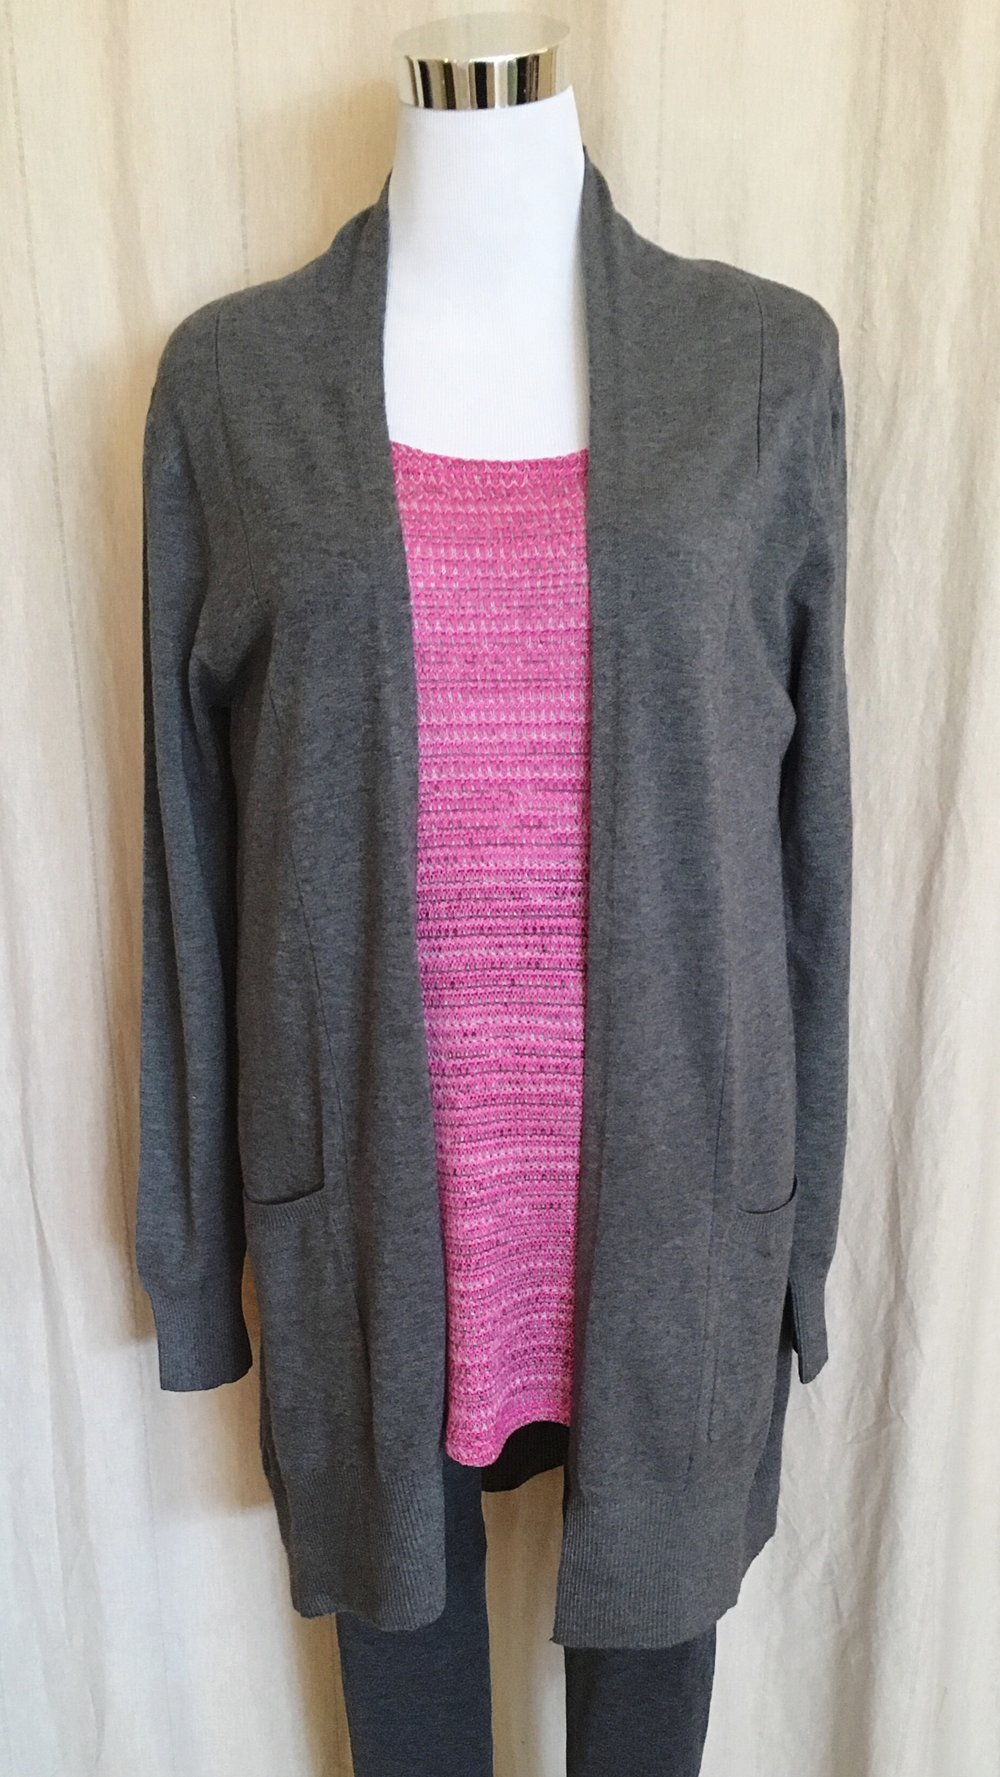 Dreamers open cardigan in grey and black. $42